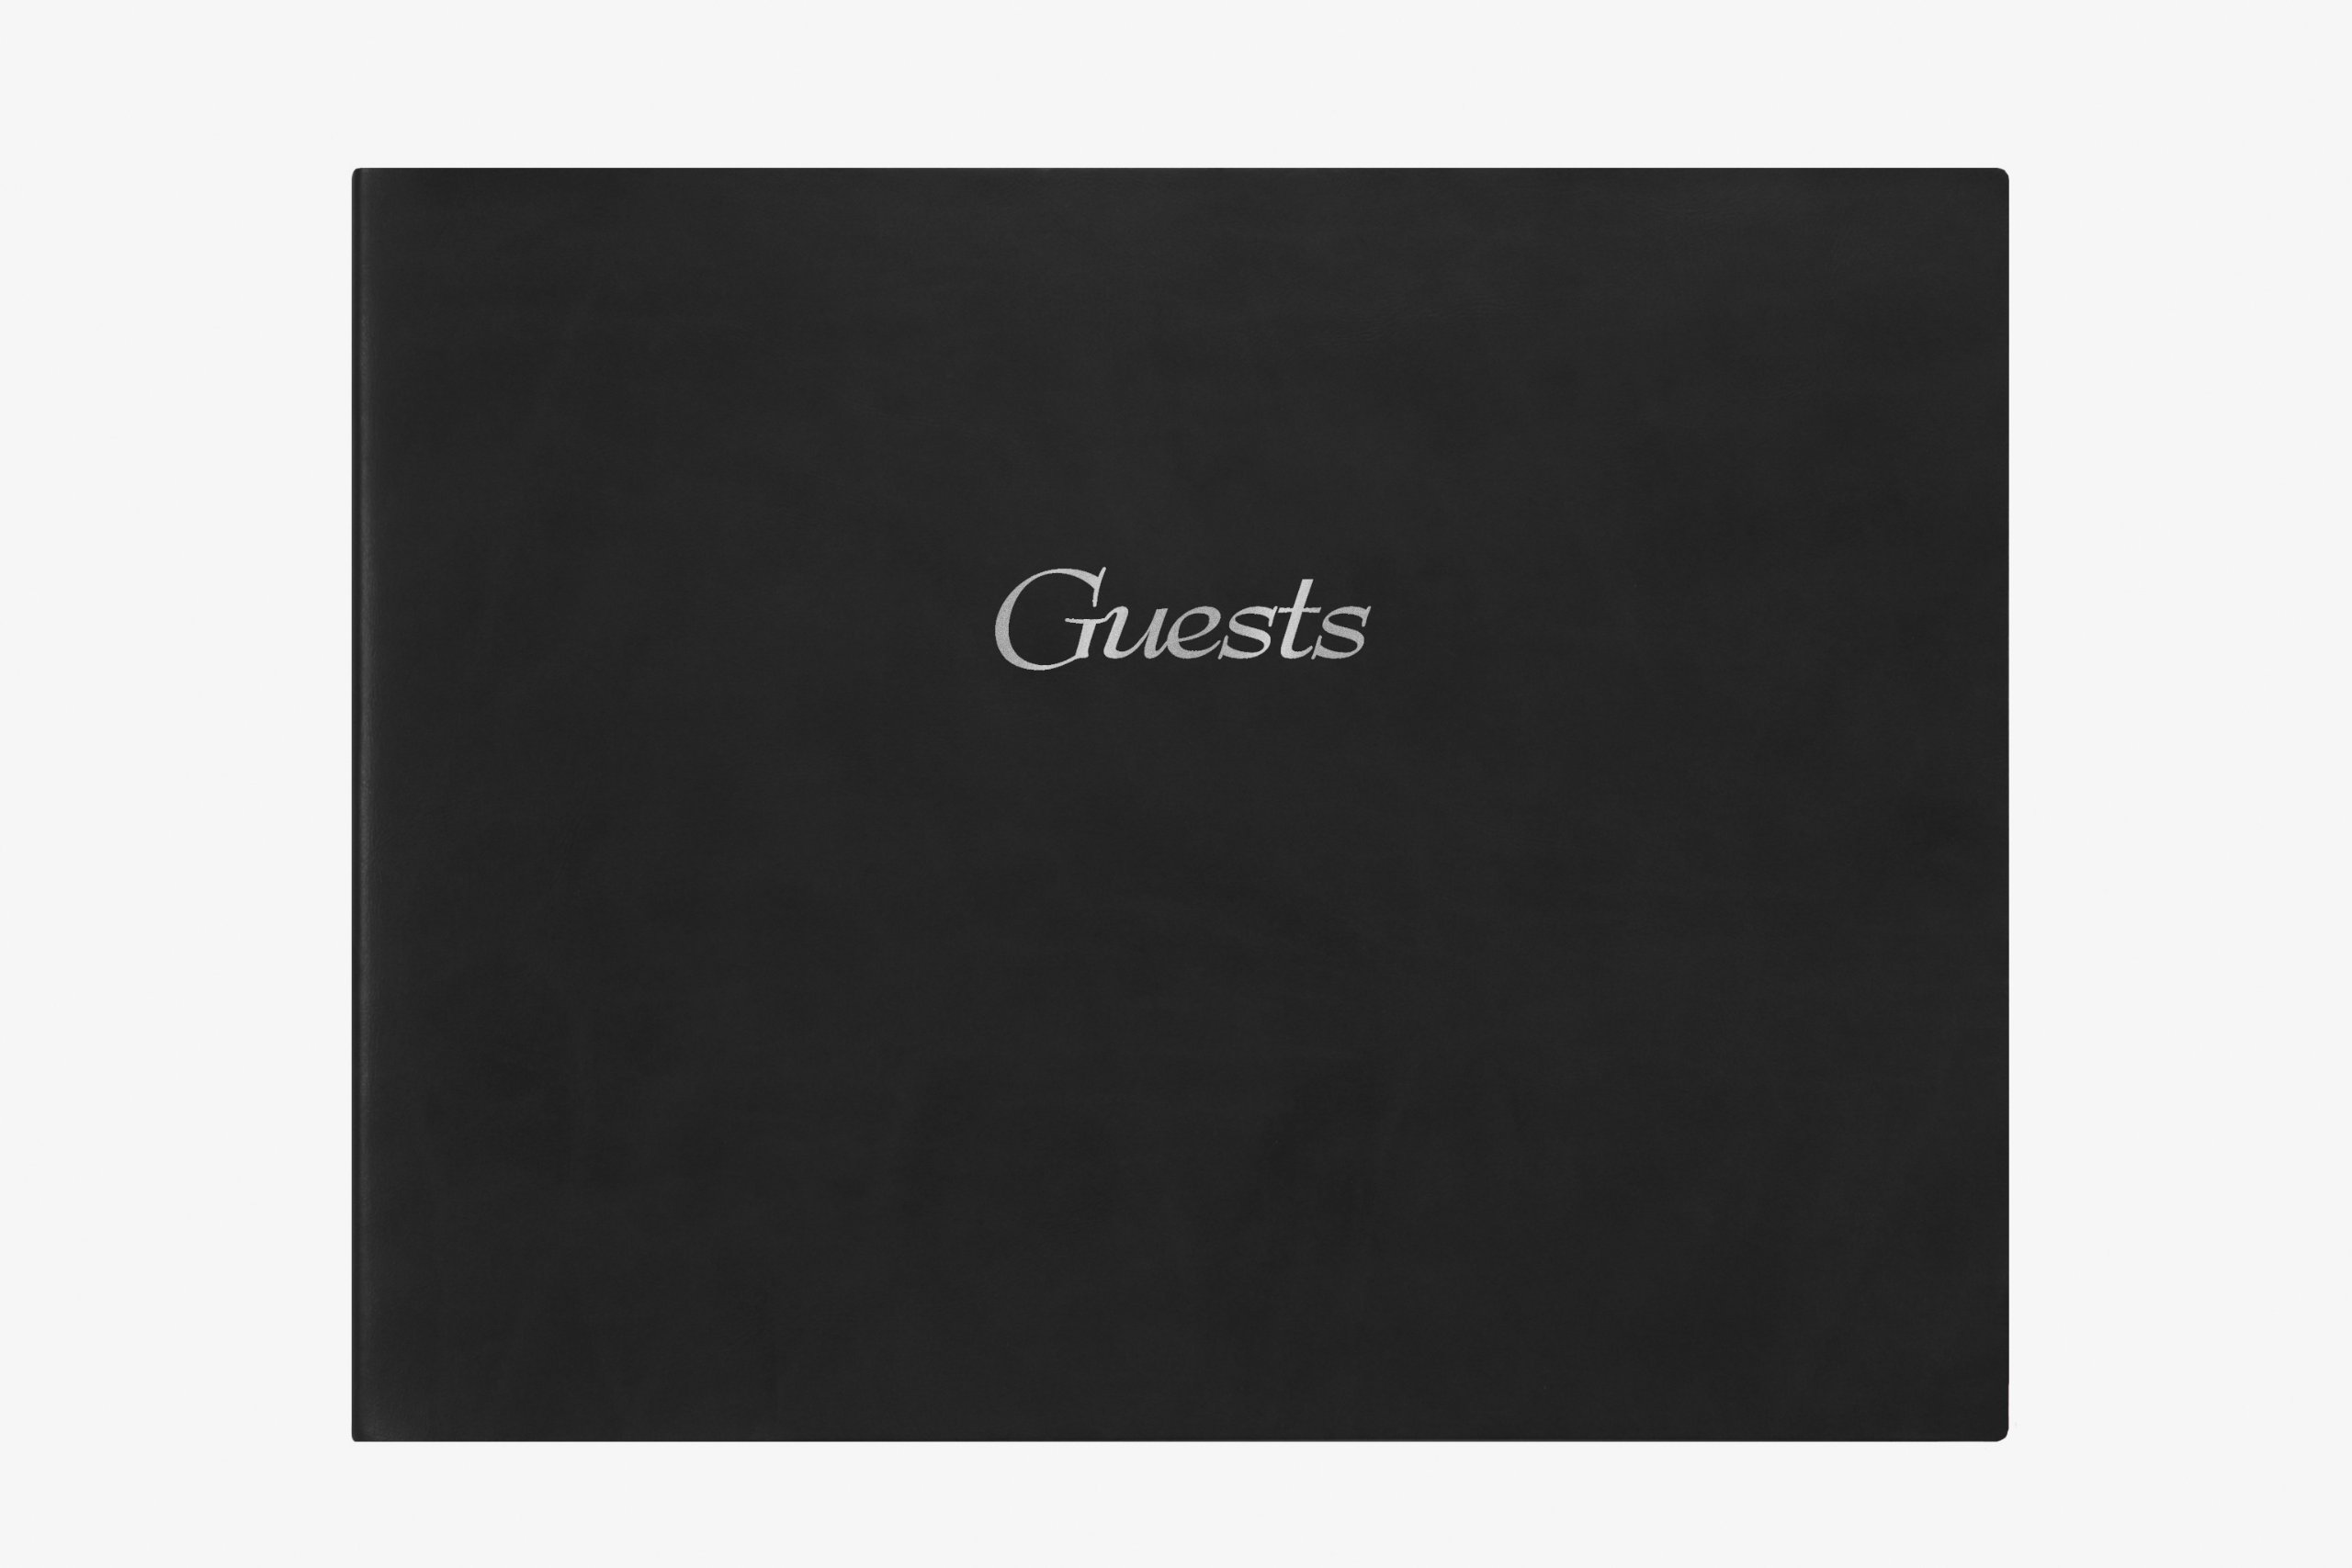 CR Gibson Deluxe Guest Book, 11-Inch by 8-Inch, Black Leather